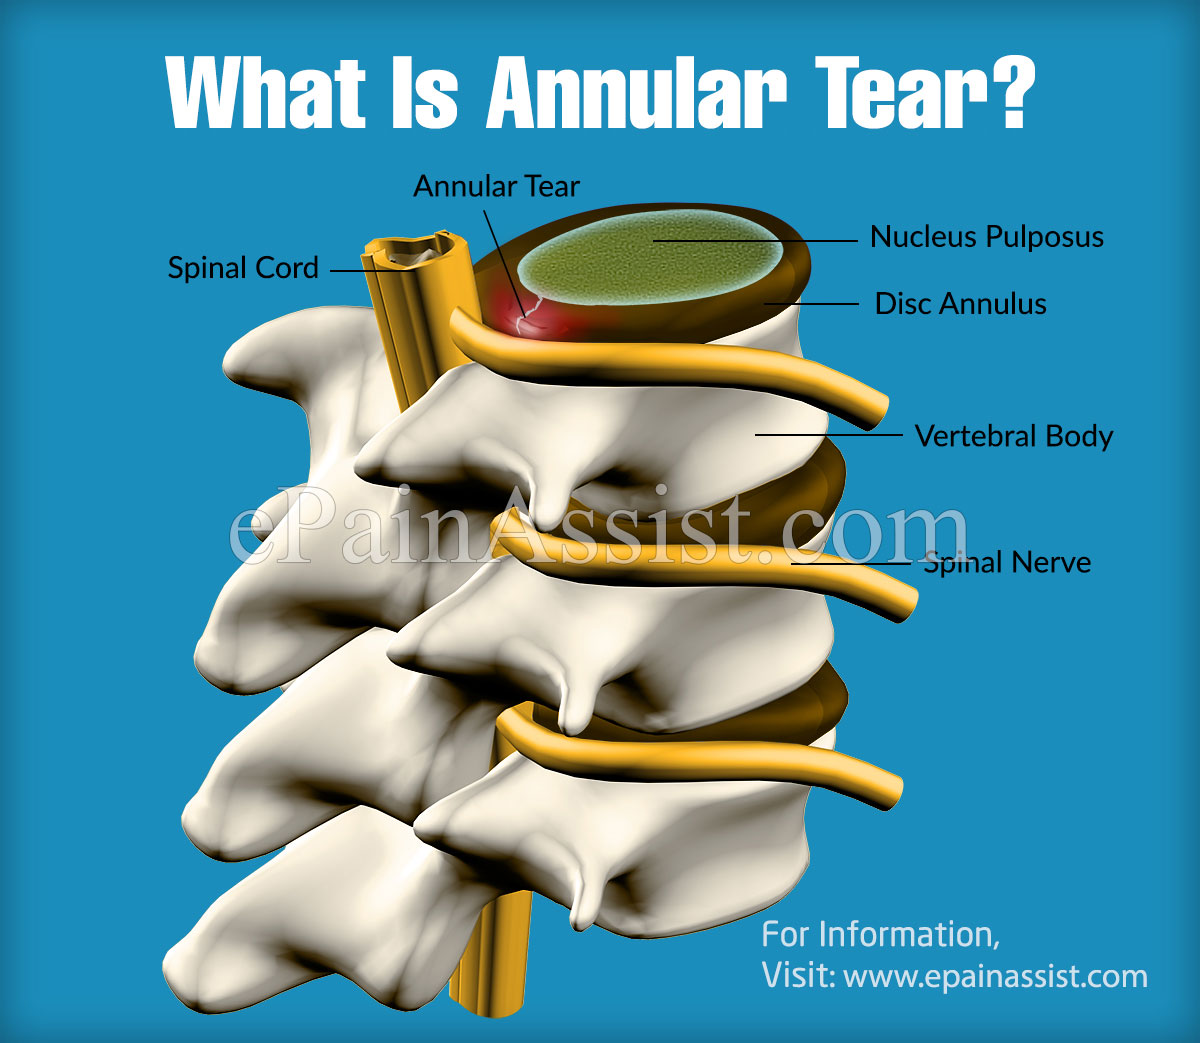 What Is Annular Tear & How Does It Feel Like?